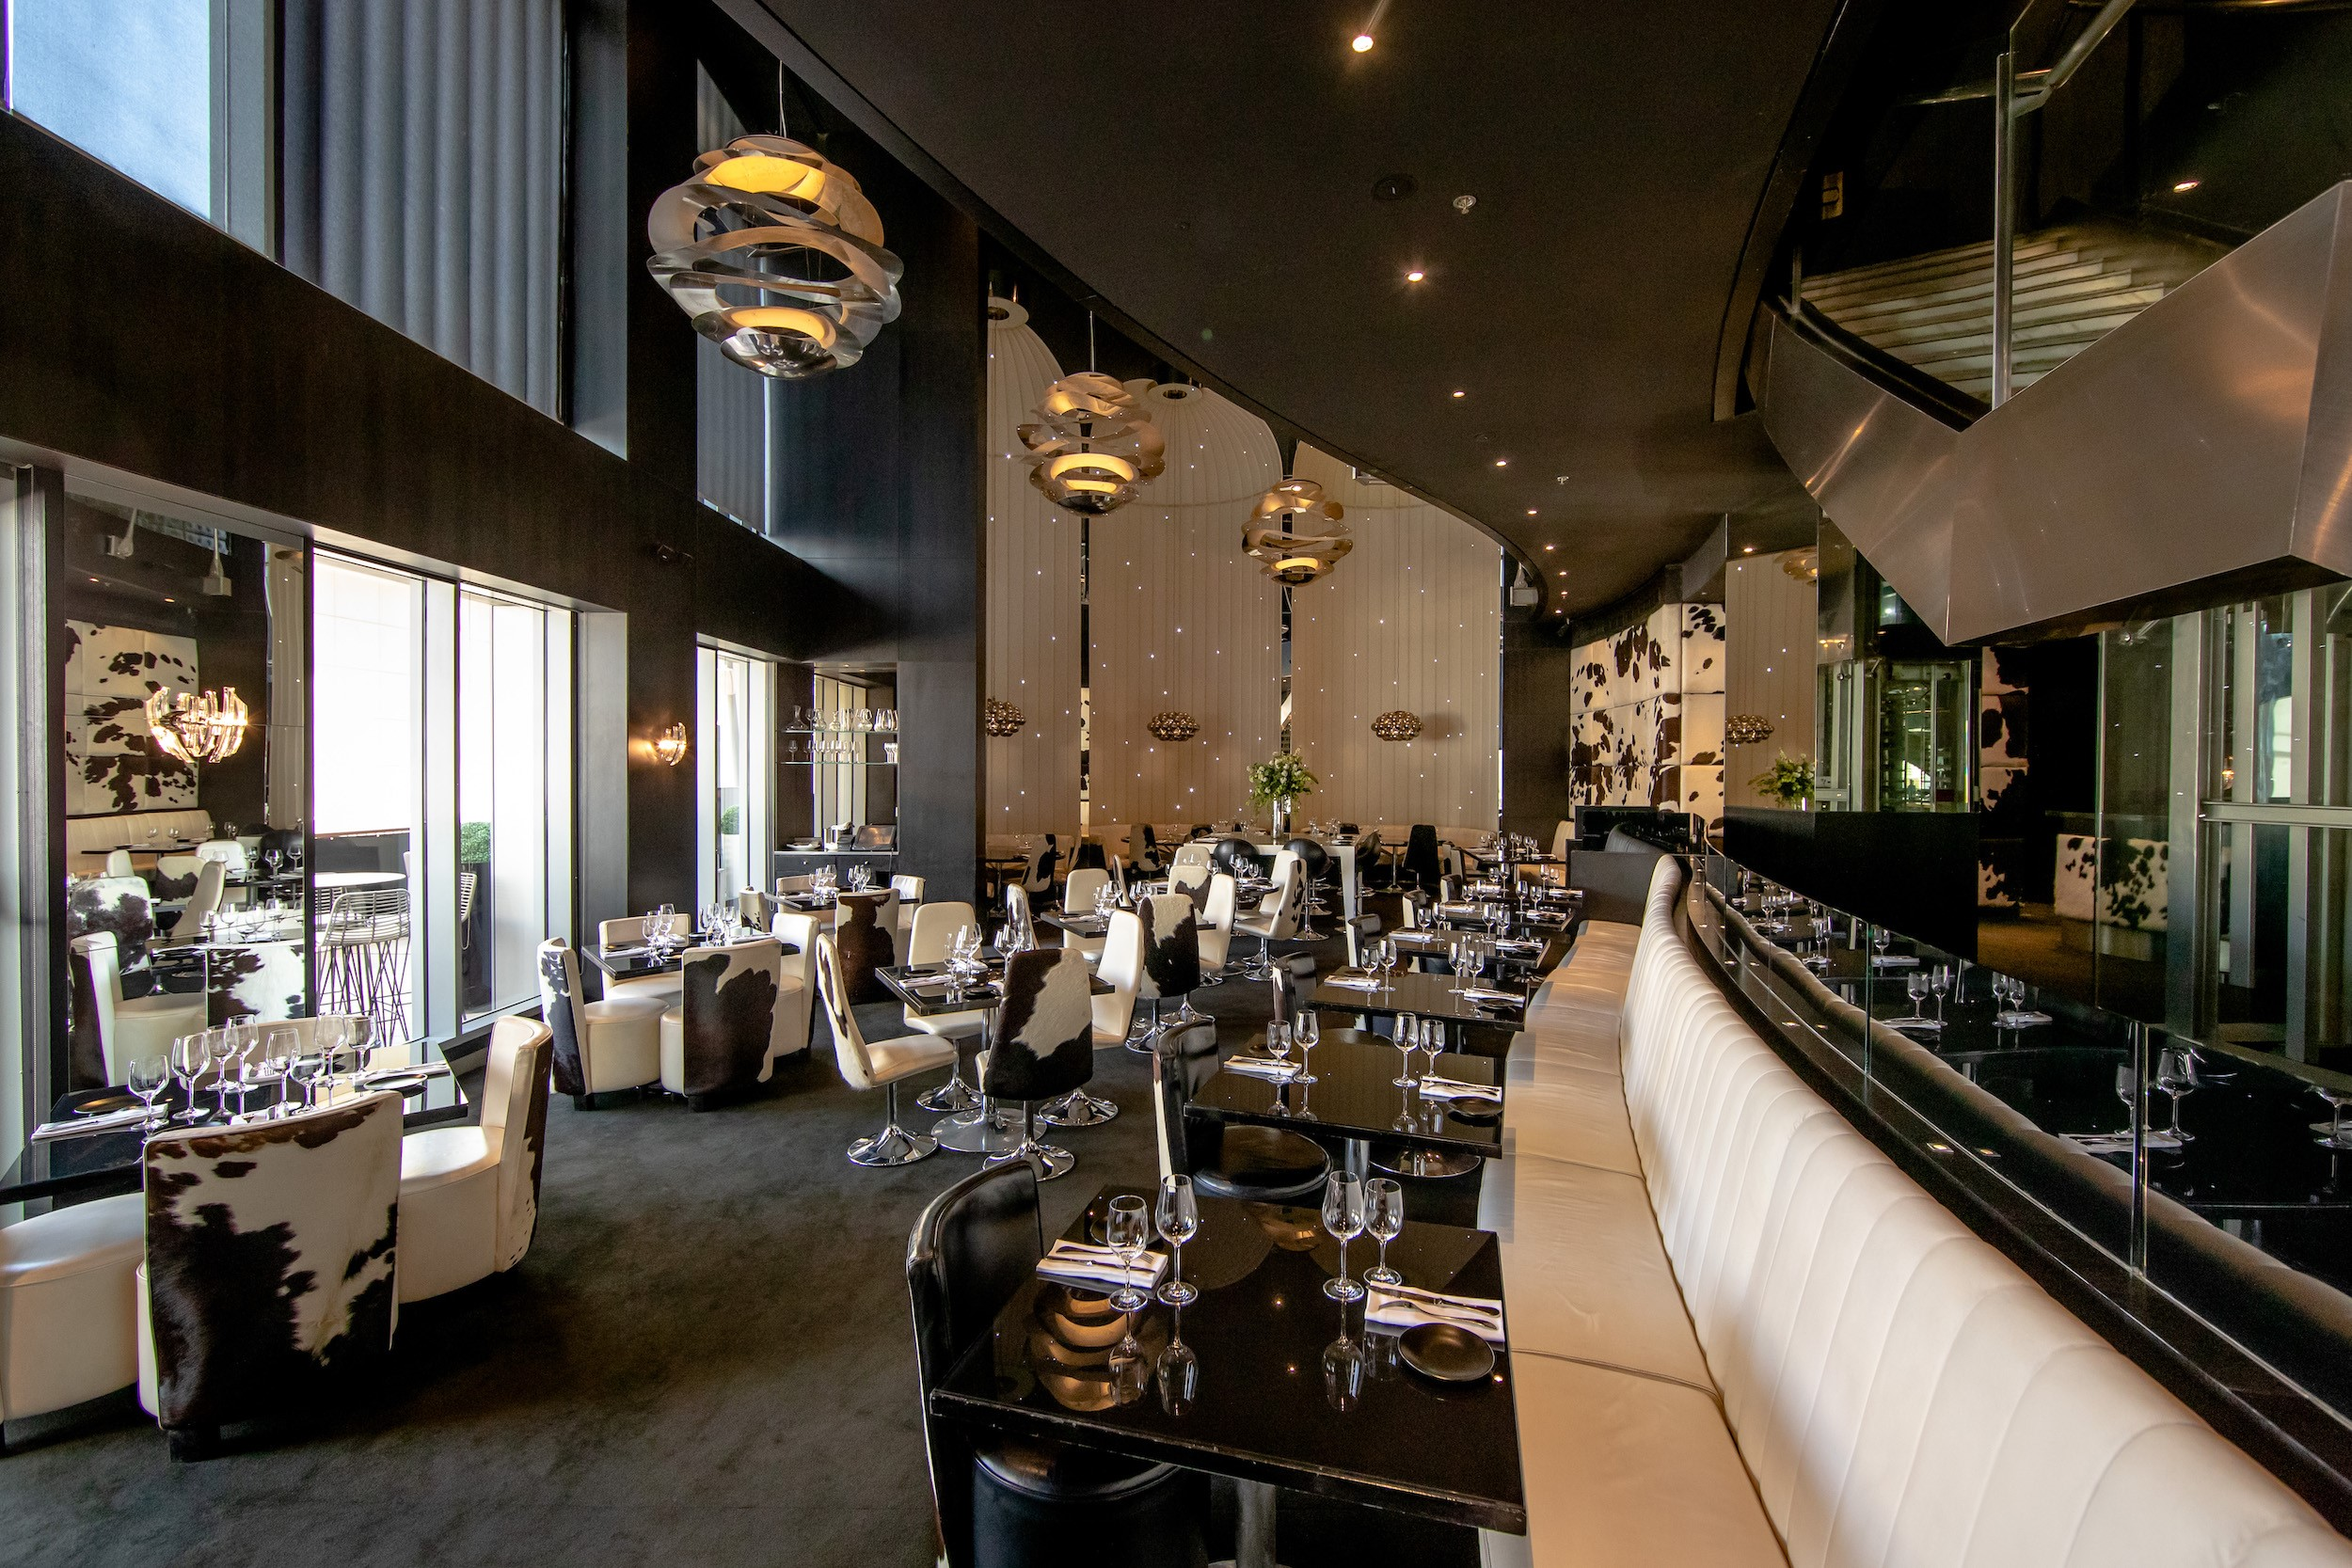 Best Restaurants In Dubai 2020 Top Restaurants In Dubai Uae 50 Best Restaurants In The Gulf For 2020 Esquire Middle East